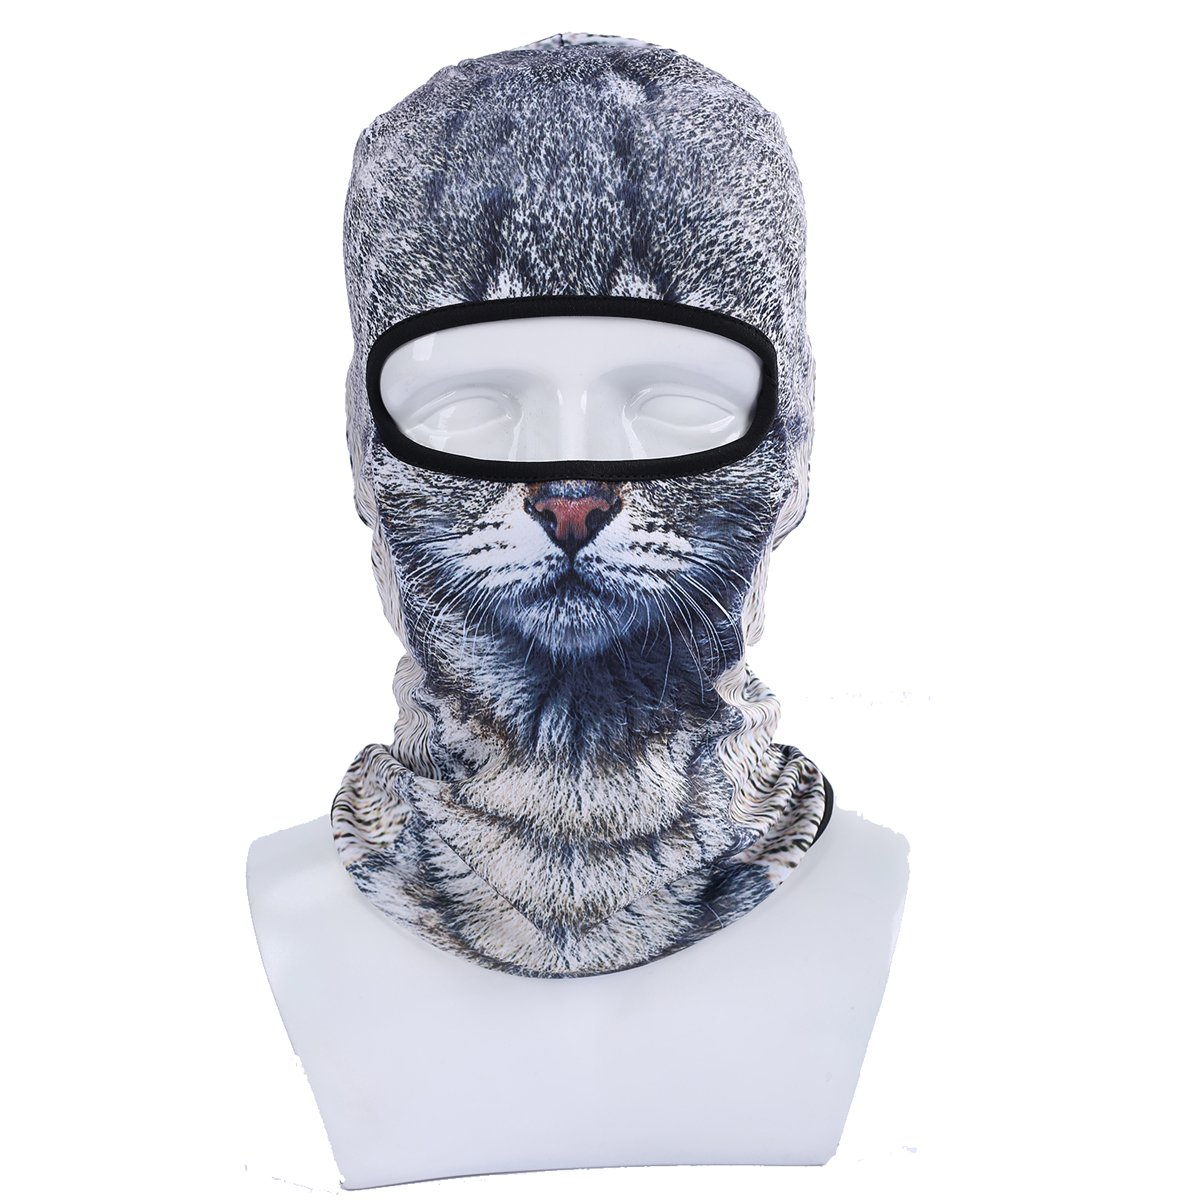 Amazon ECYC Fleece Warm Face Mask Windproof Balaclava Hood For Motorcycle Ski Winter Snowmobile Outdoor Research Cold Weather Grey Cat One Size